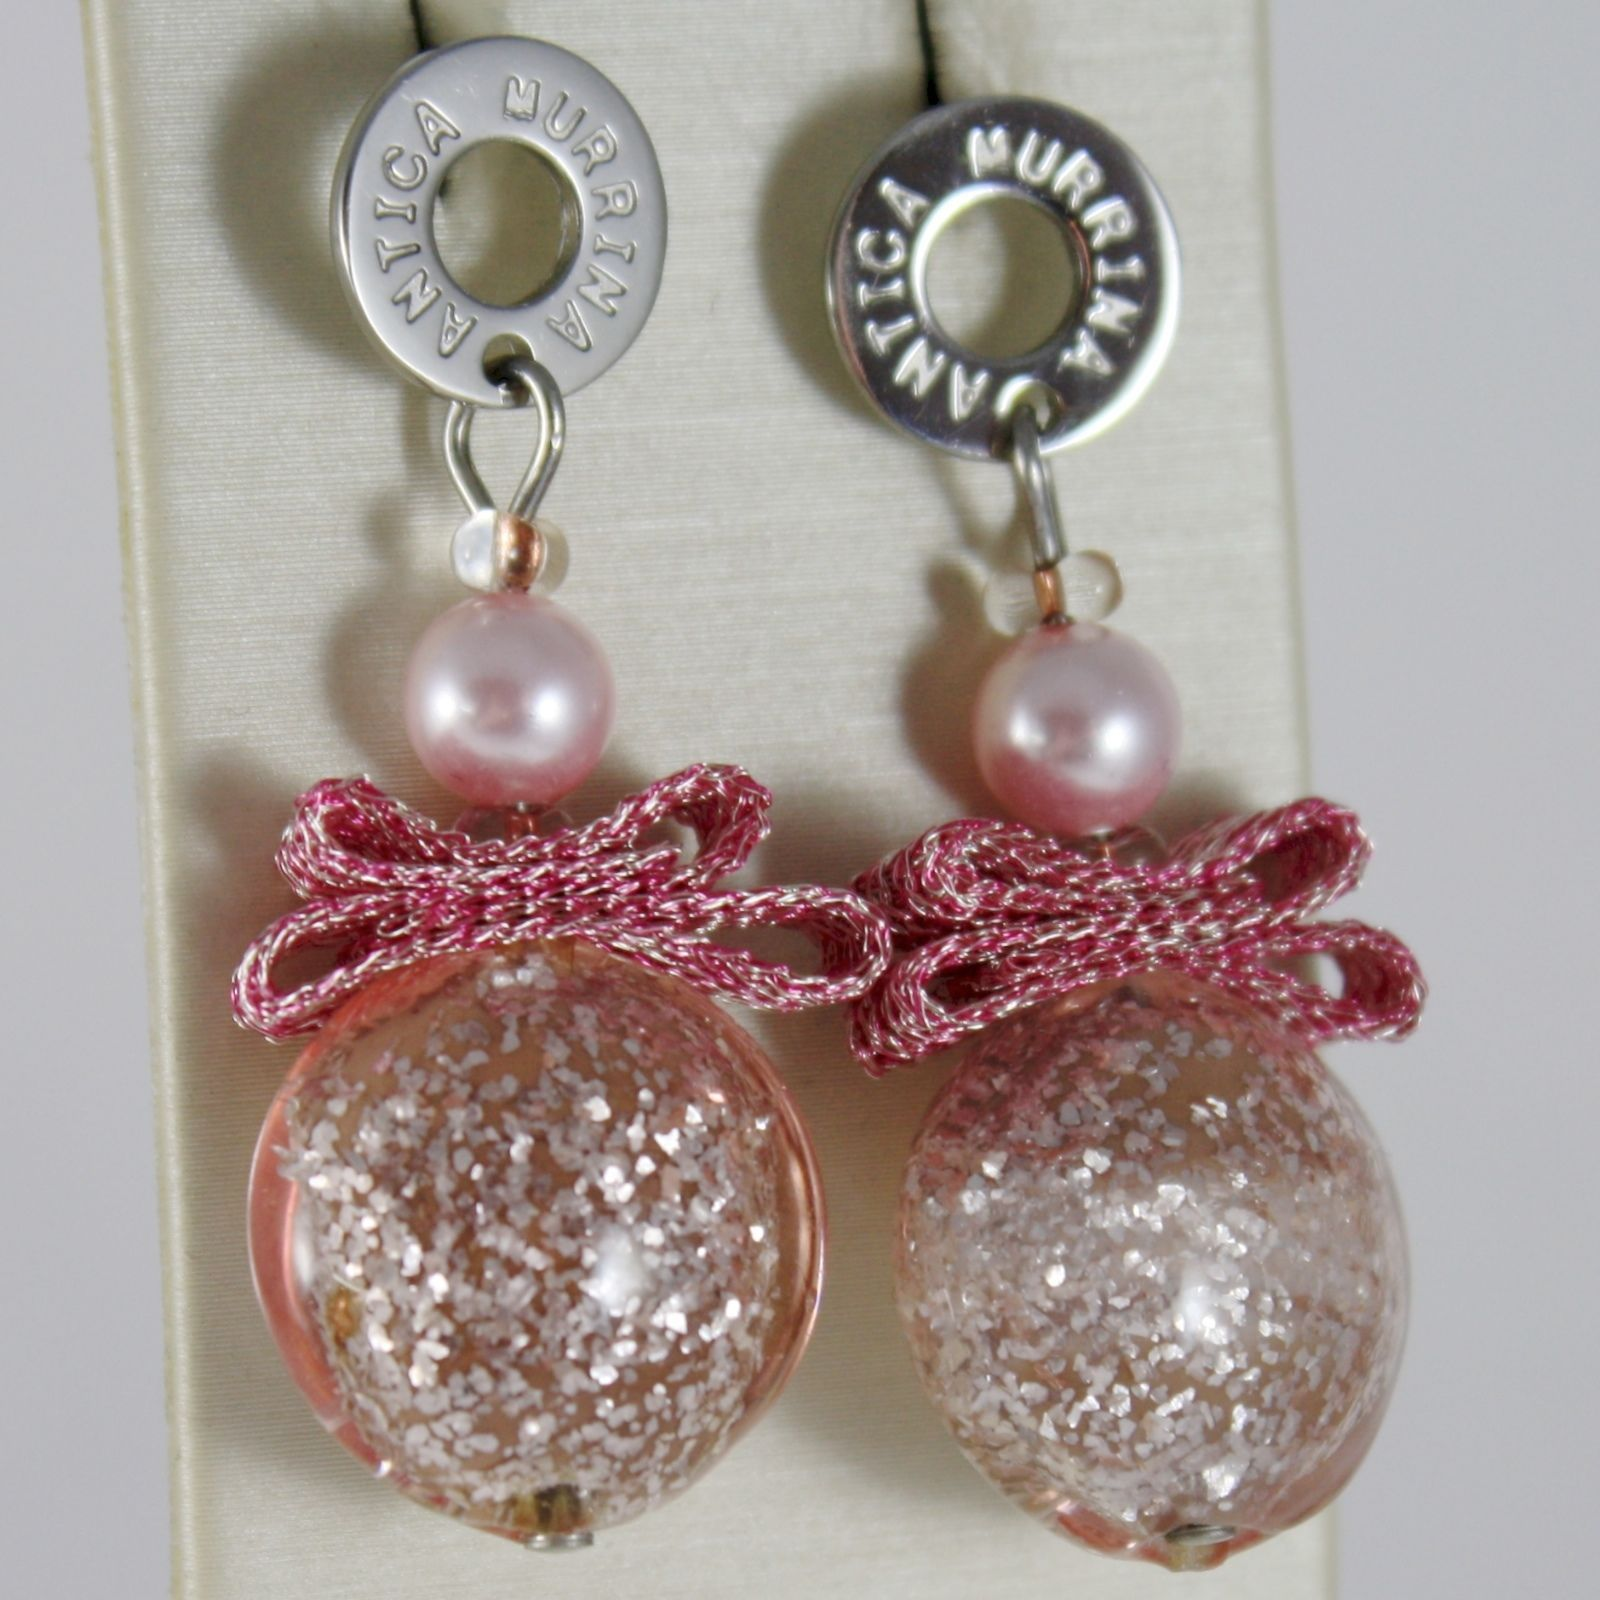 ANTICA MURRINA VENEZIA EARRINGS, PINK GLAM EFFECT ROUND DISCS WITH BOW